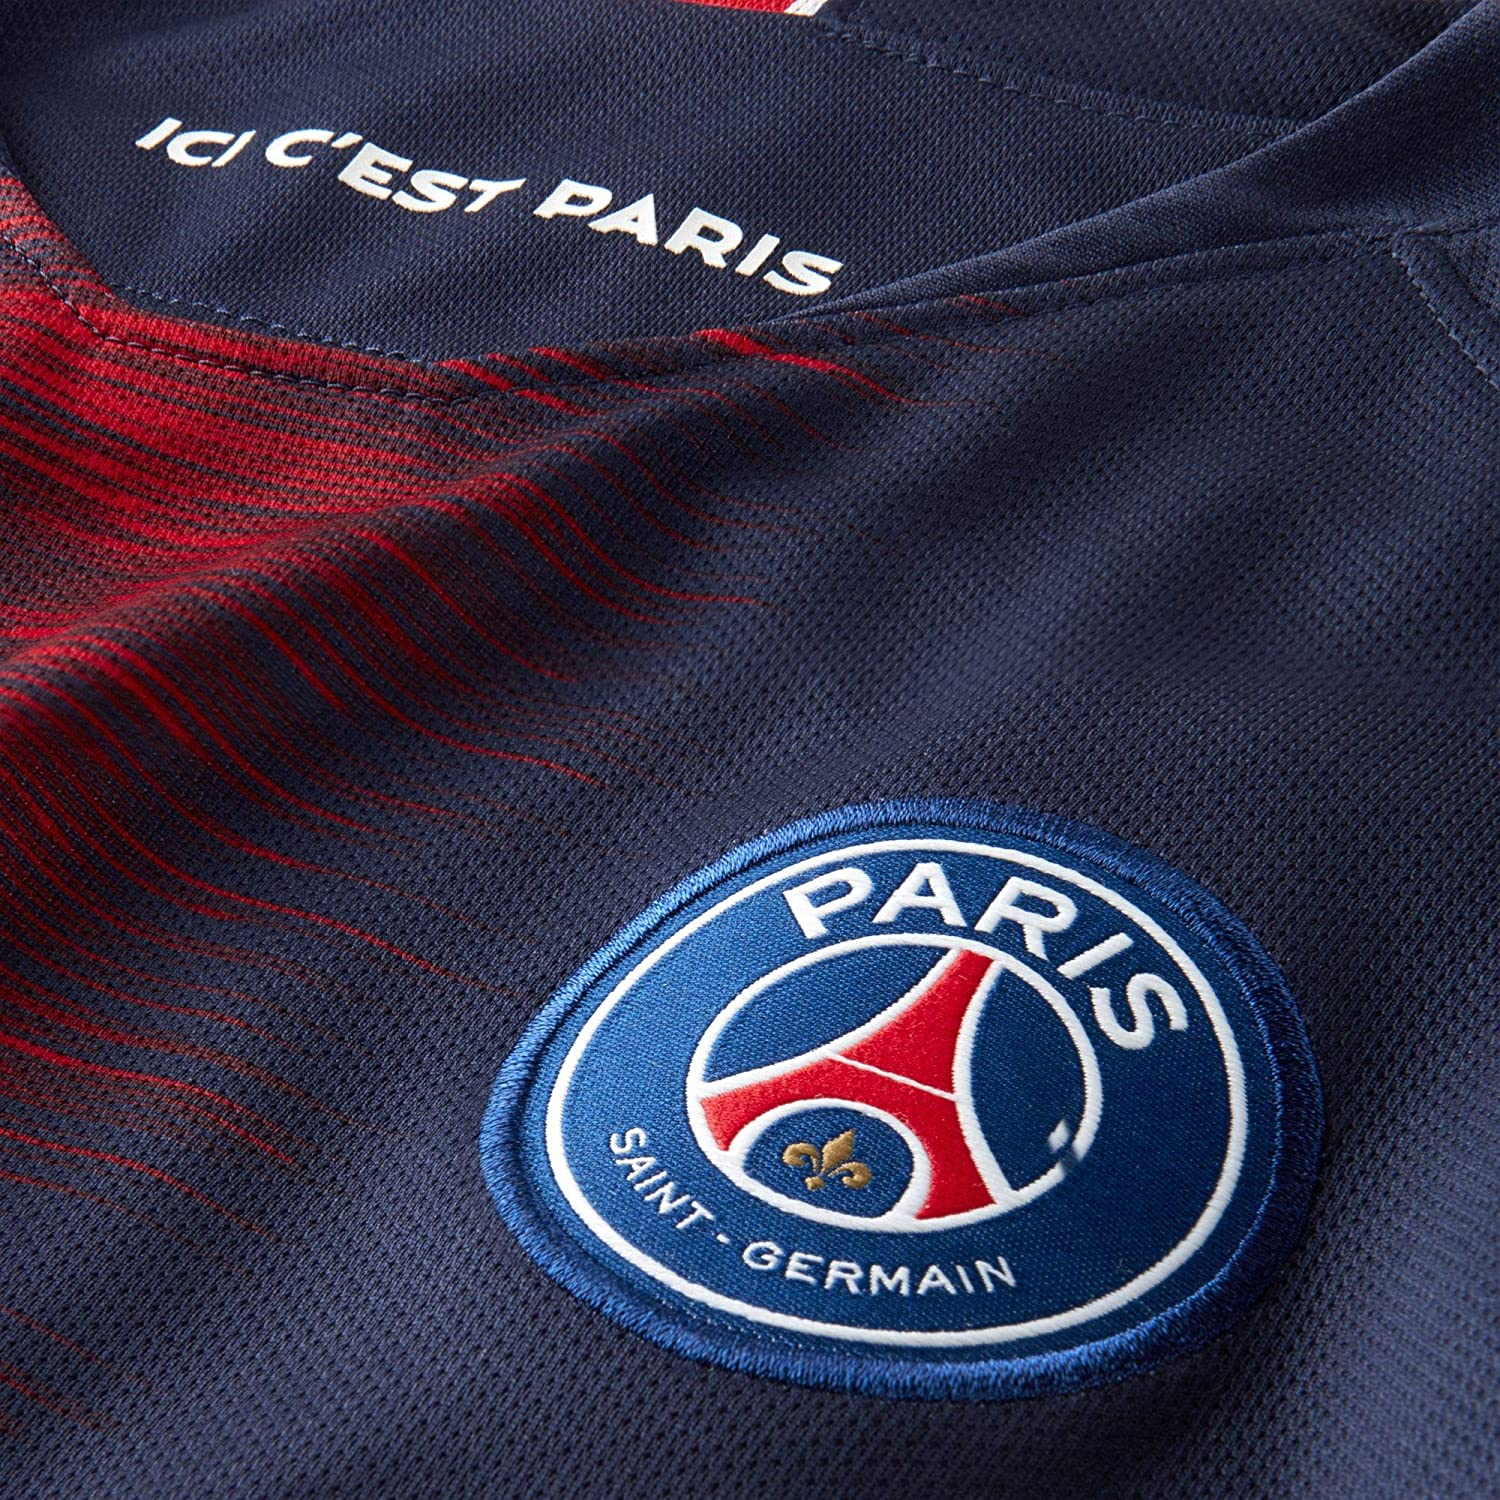 Amazon.com: Nike 2018 – 2019 PSG Home para mujer playera de ...